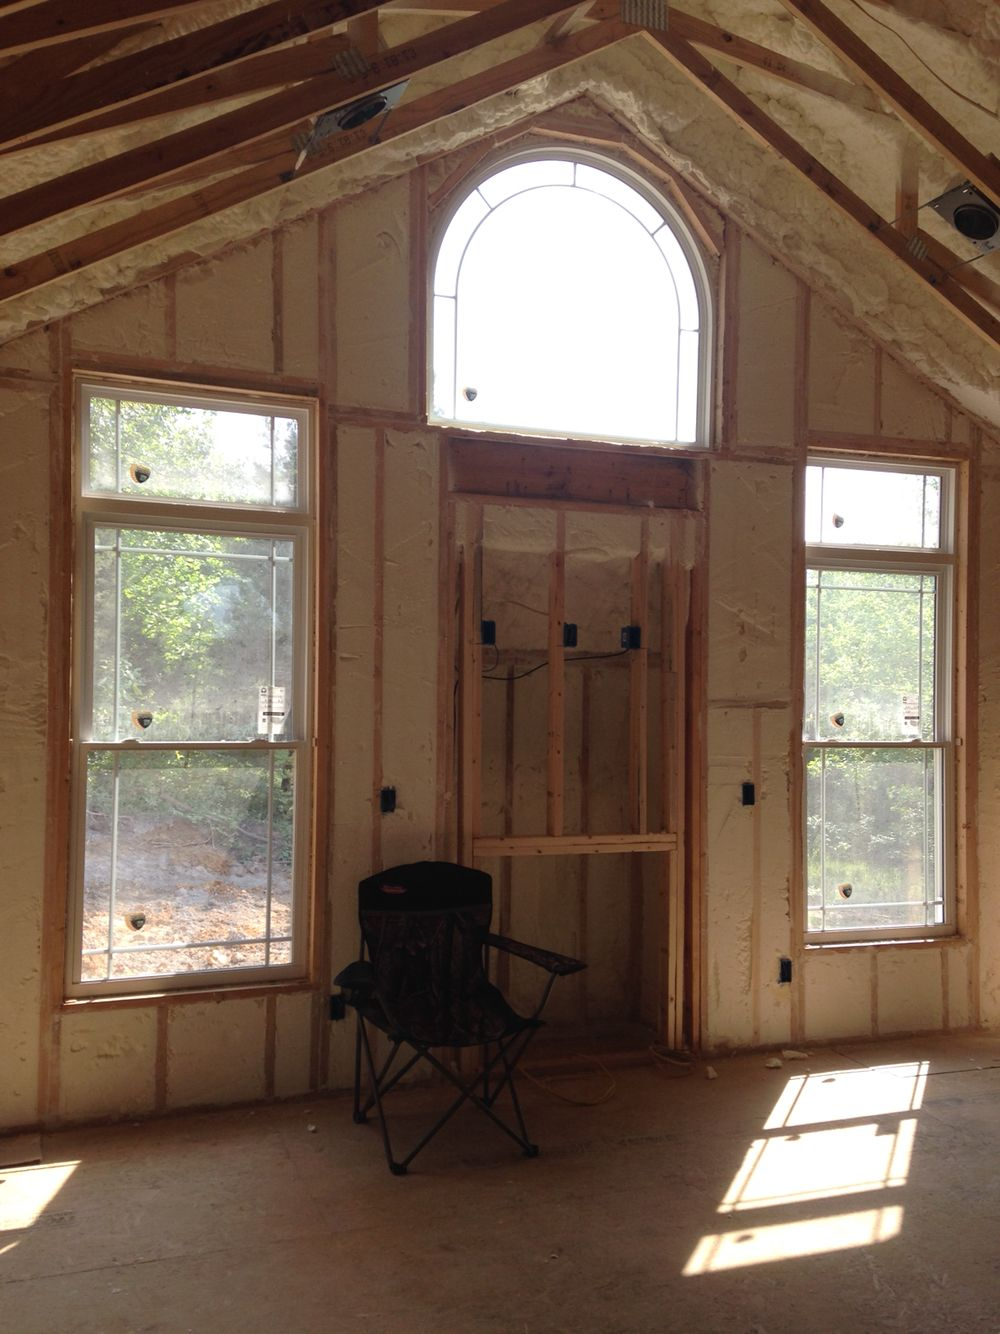 Spray Foam Insulation In Living Room Vaulted Ceiling Custom Craftsman Home Craftsman Style Home Dream House House